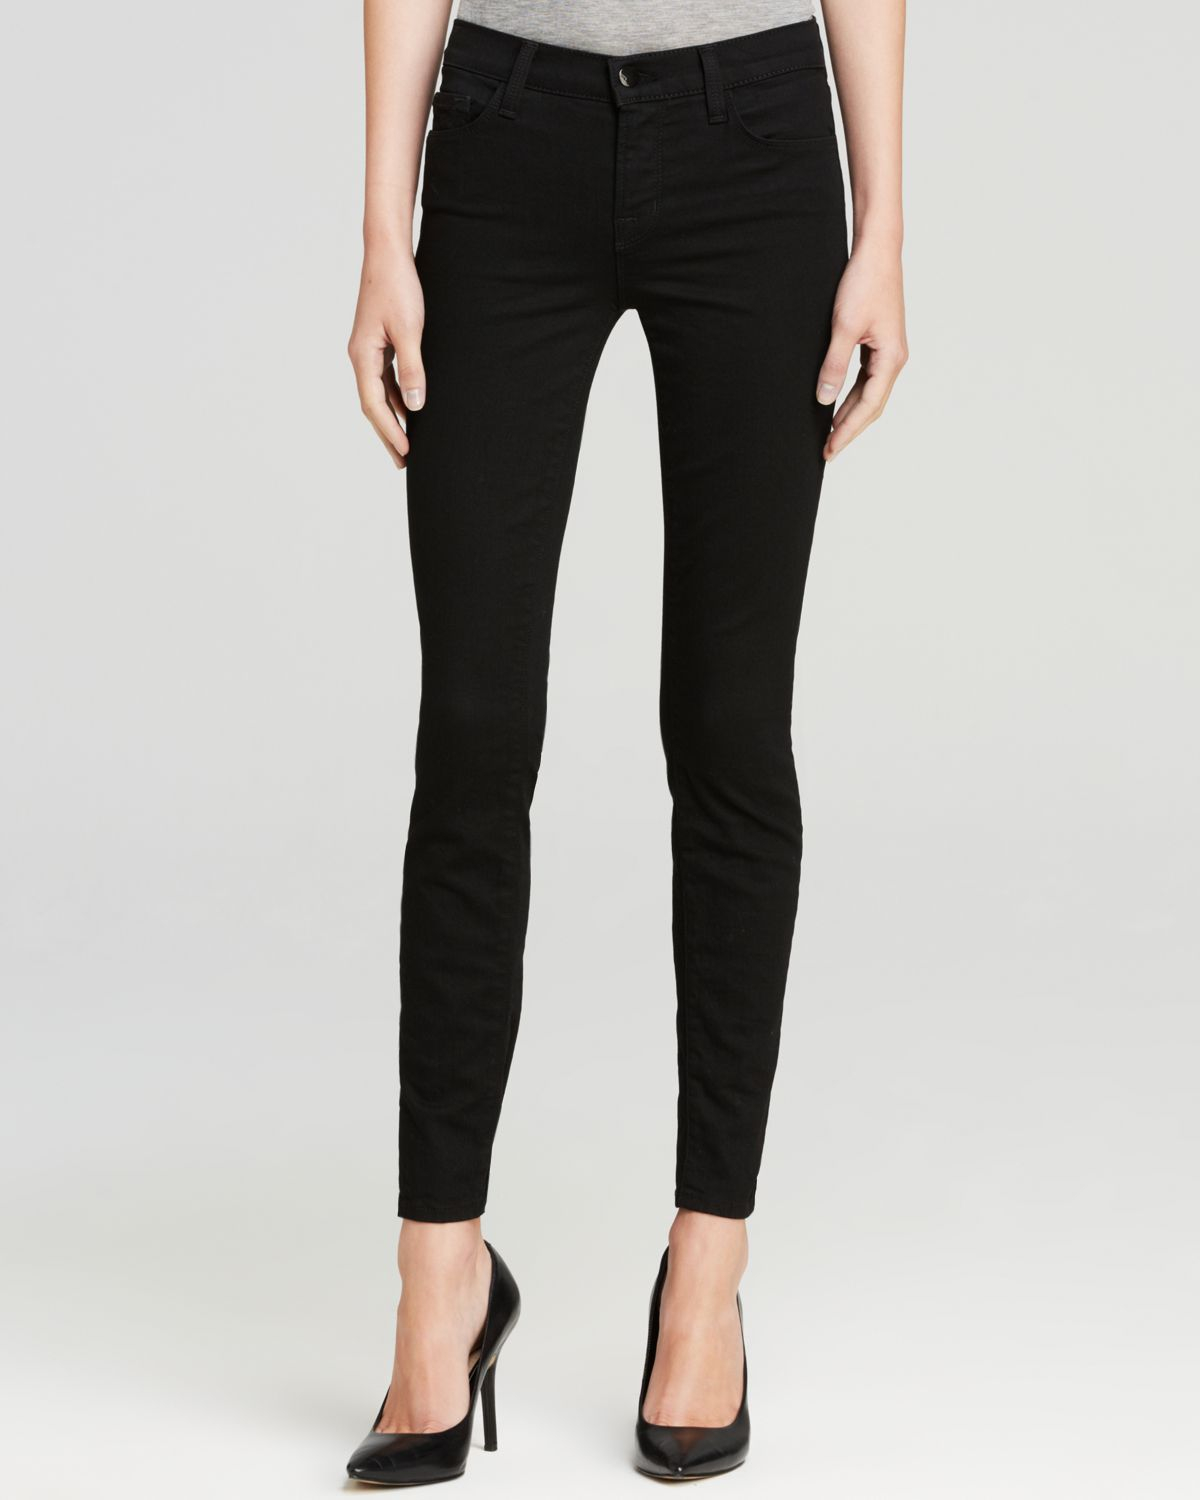 Vanity Jeans For Men : J brand jeans photo ready mid rise skinny in vanity